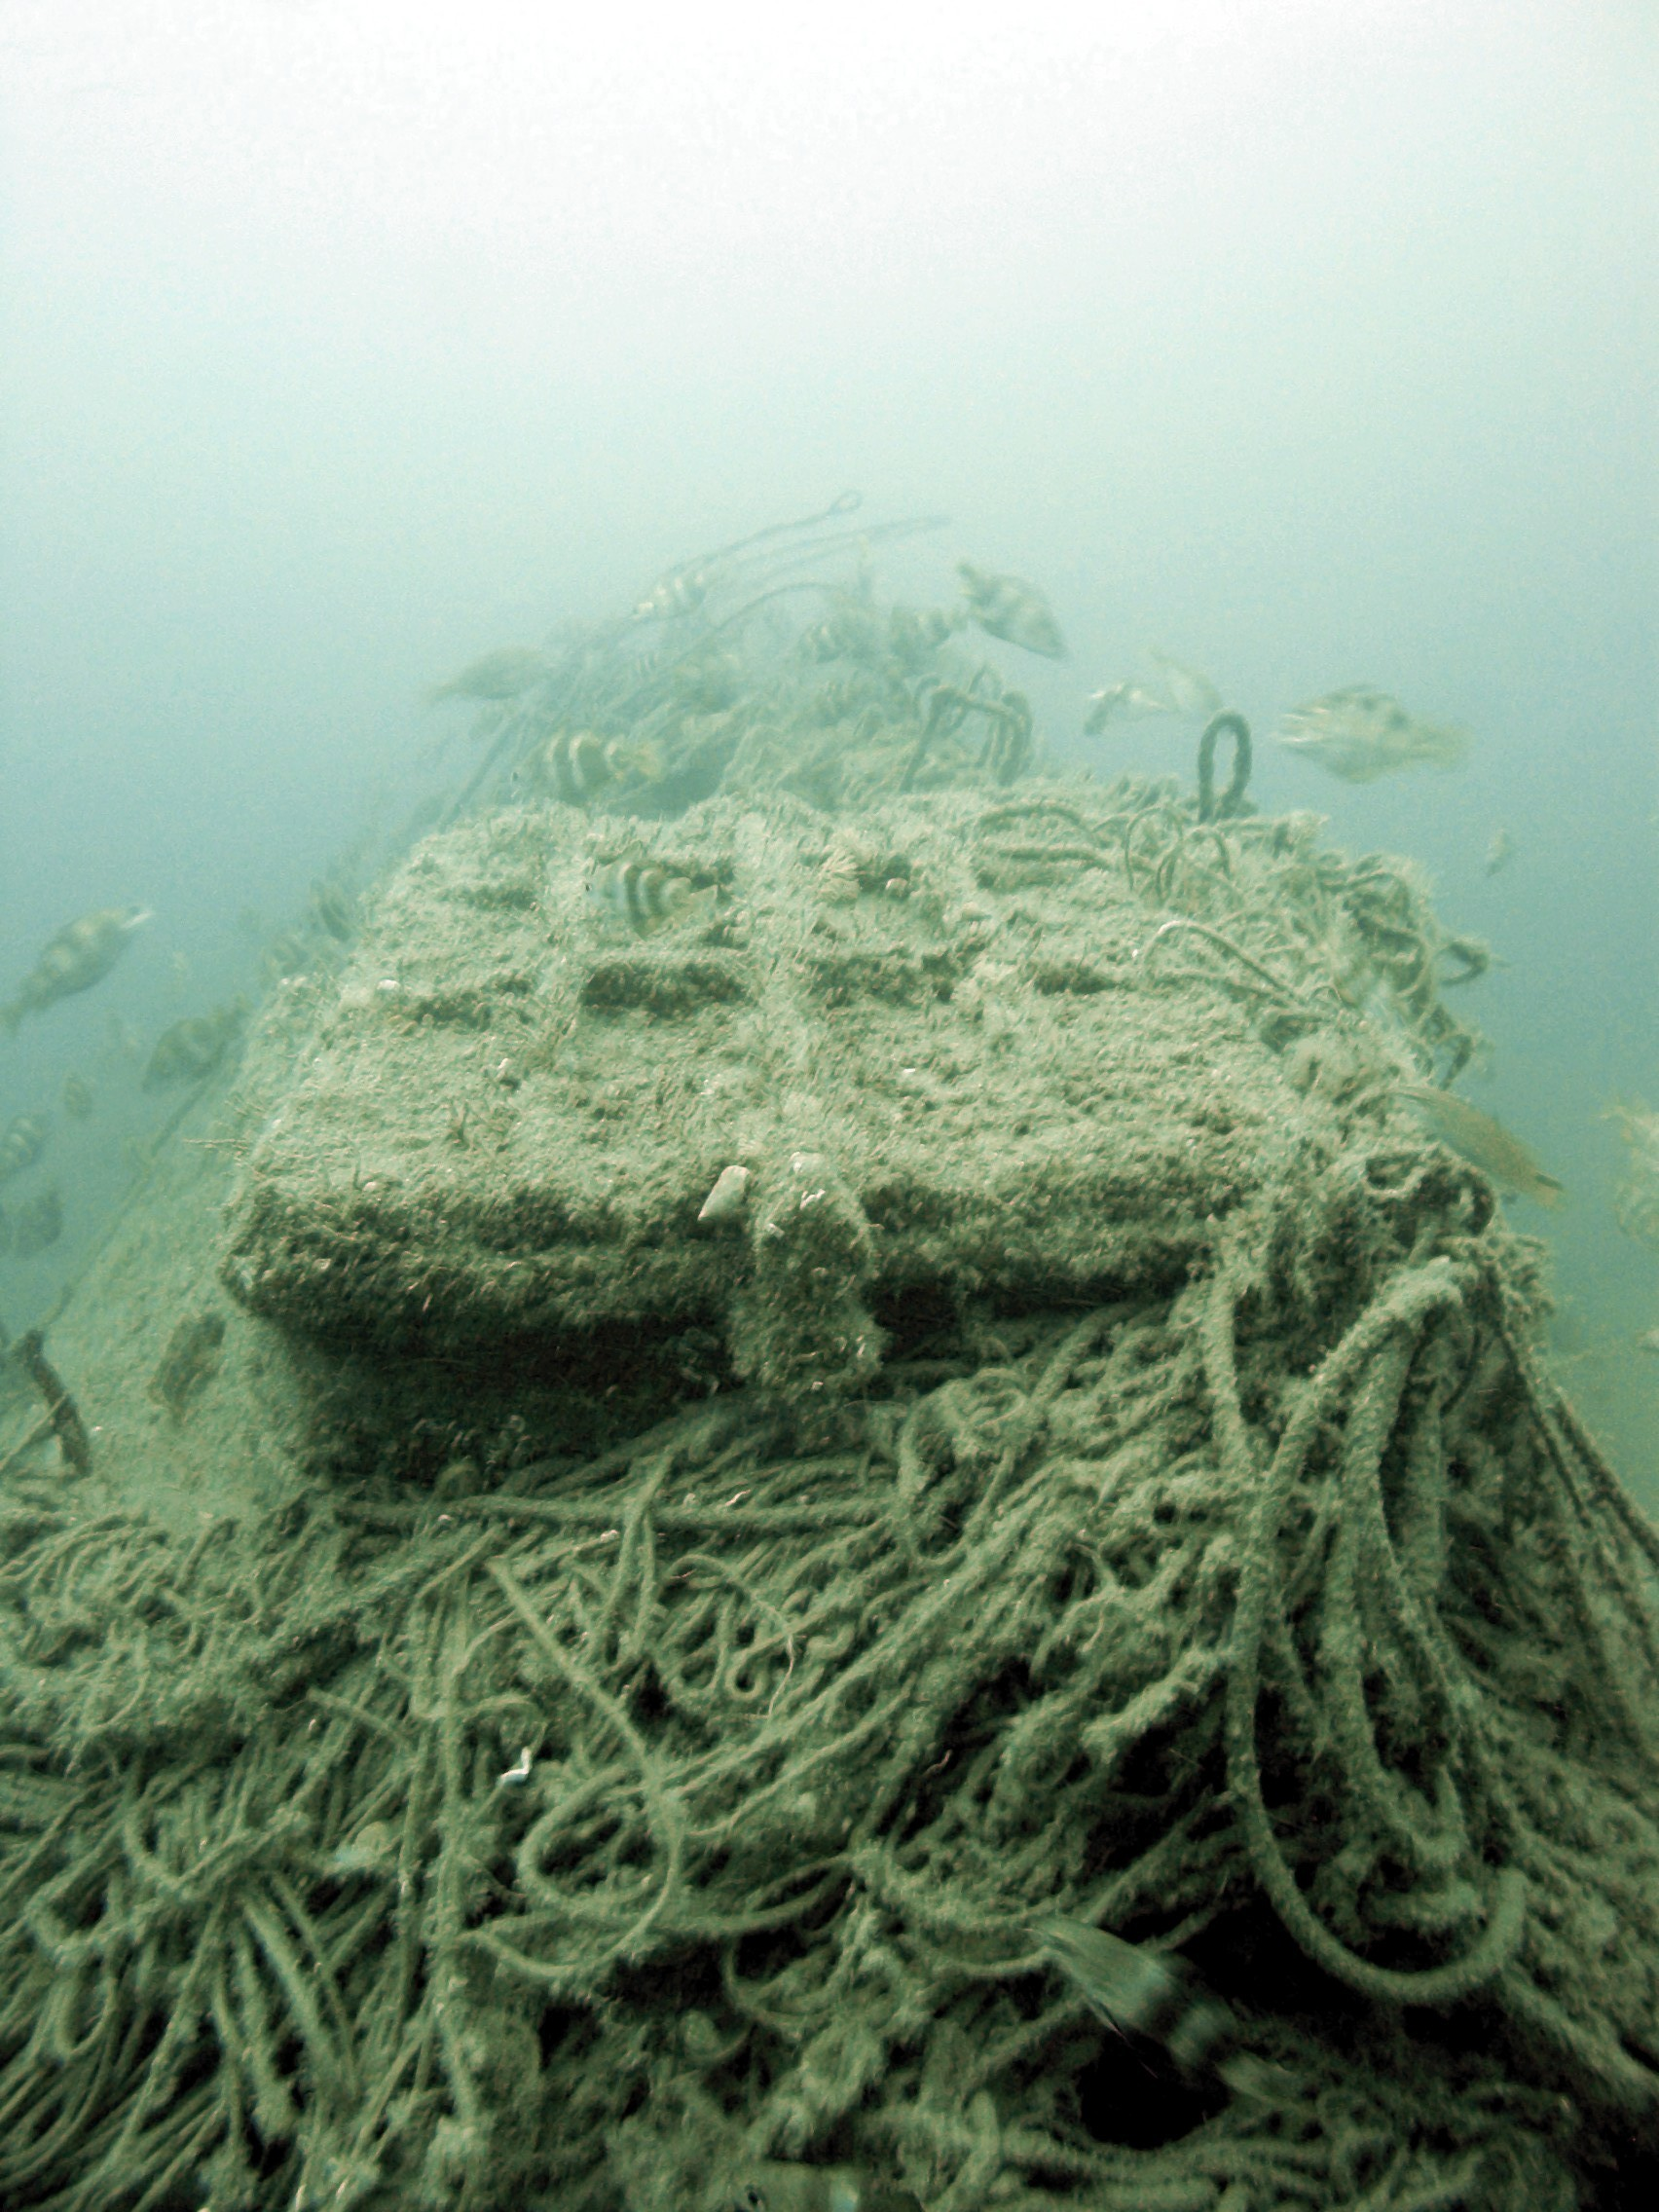 Hatch of the  protected wreck Holland V and fish